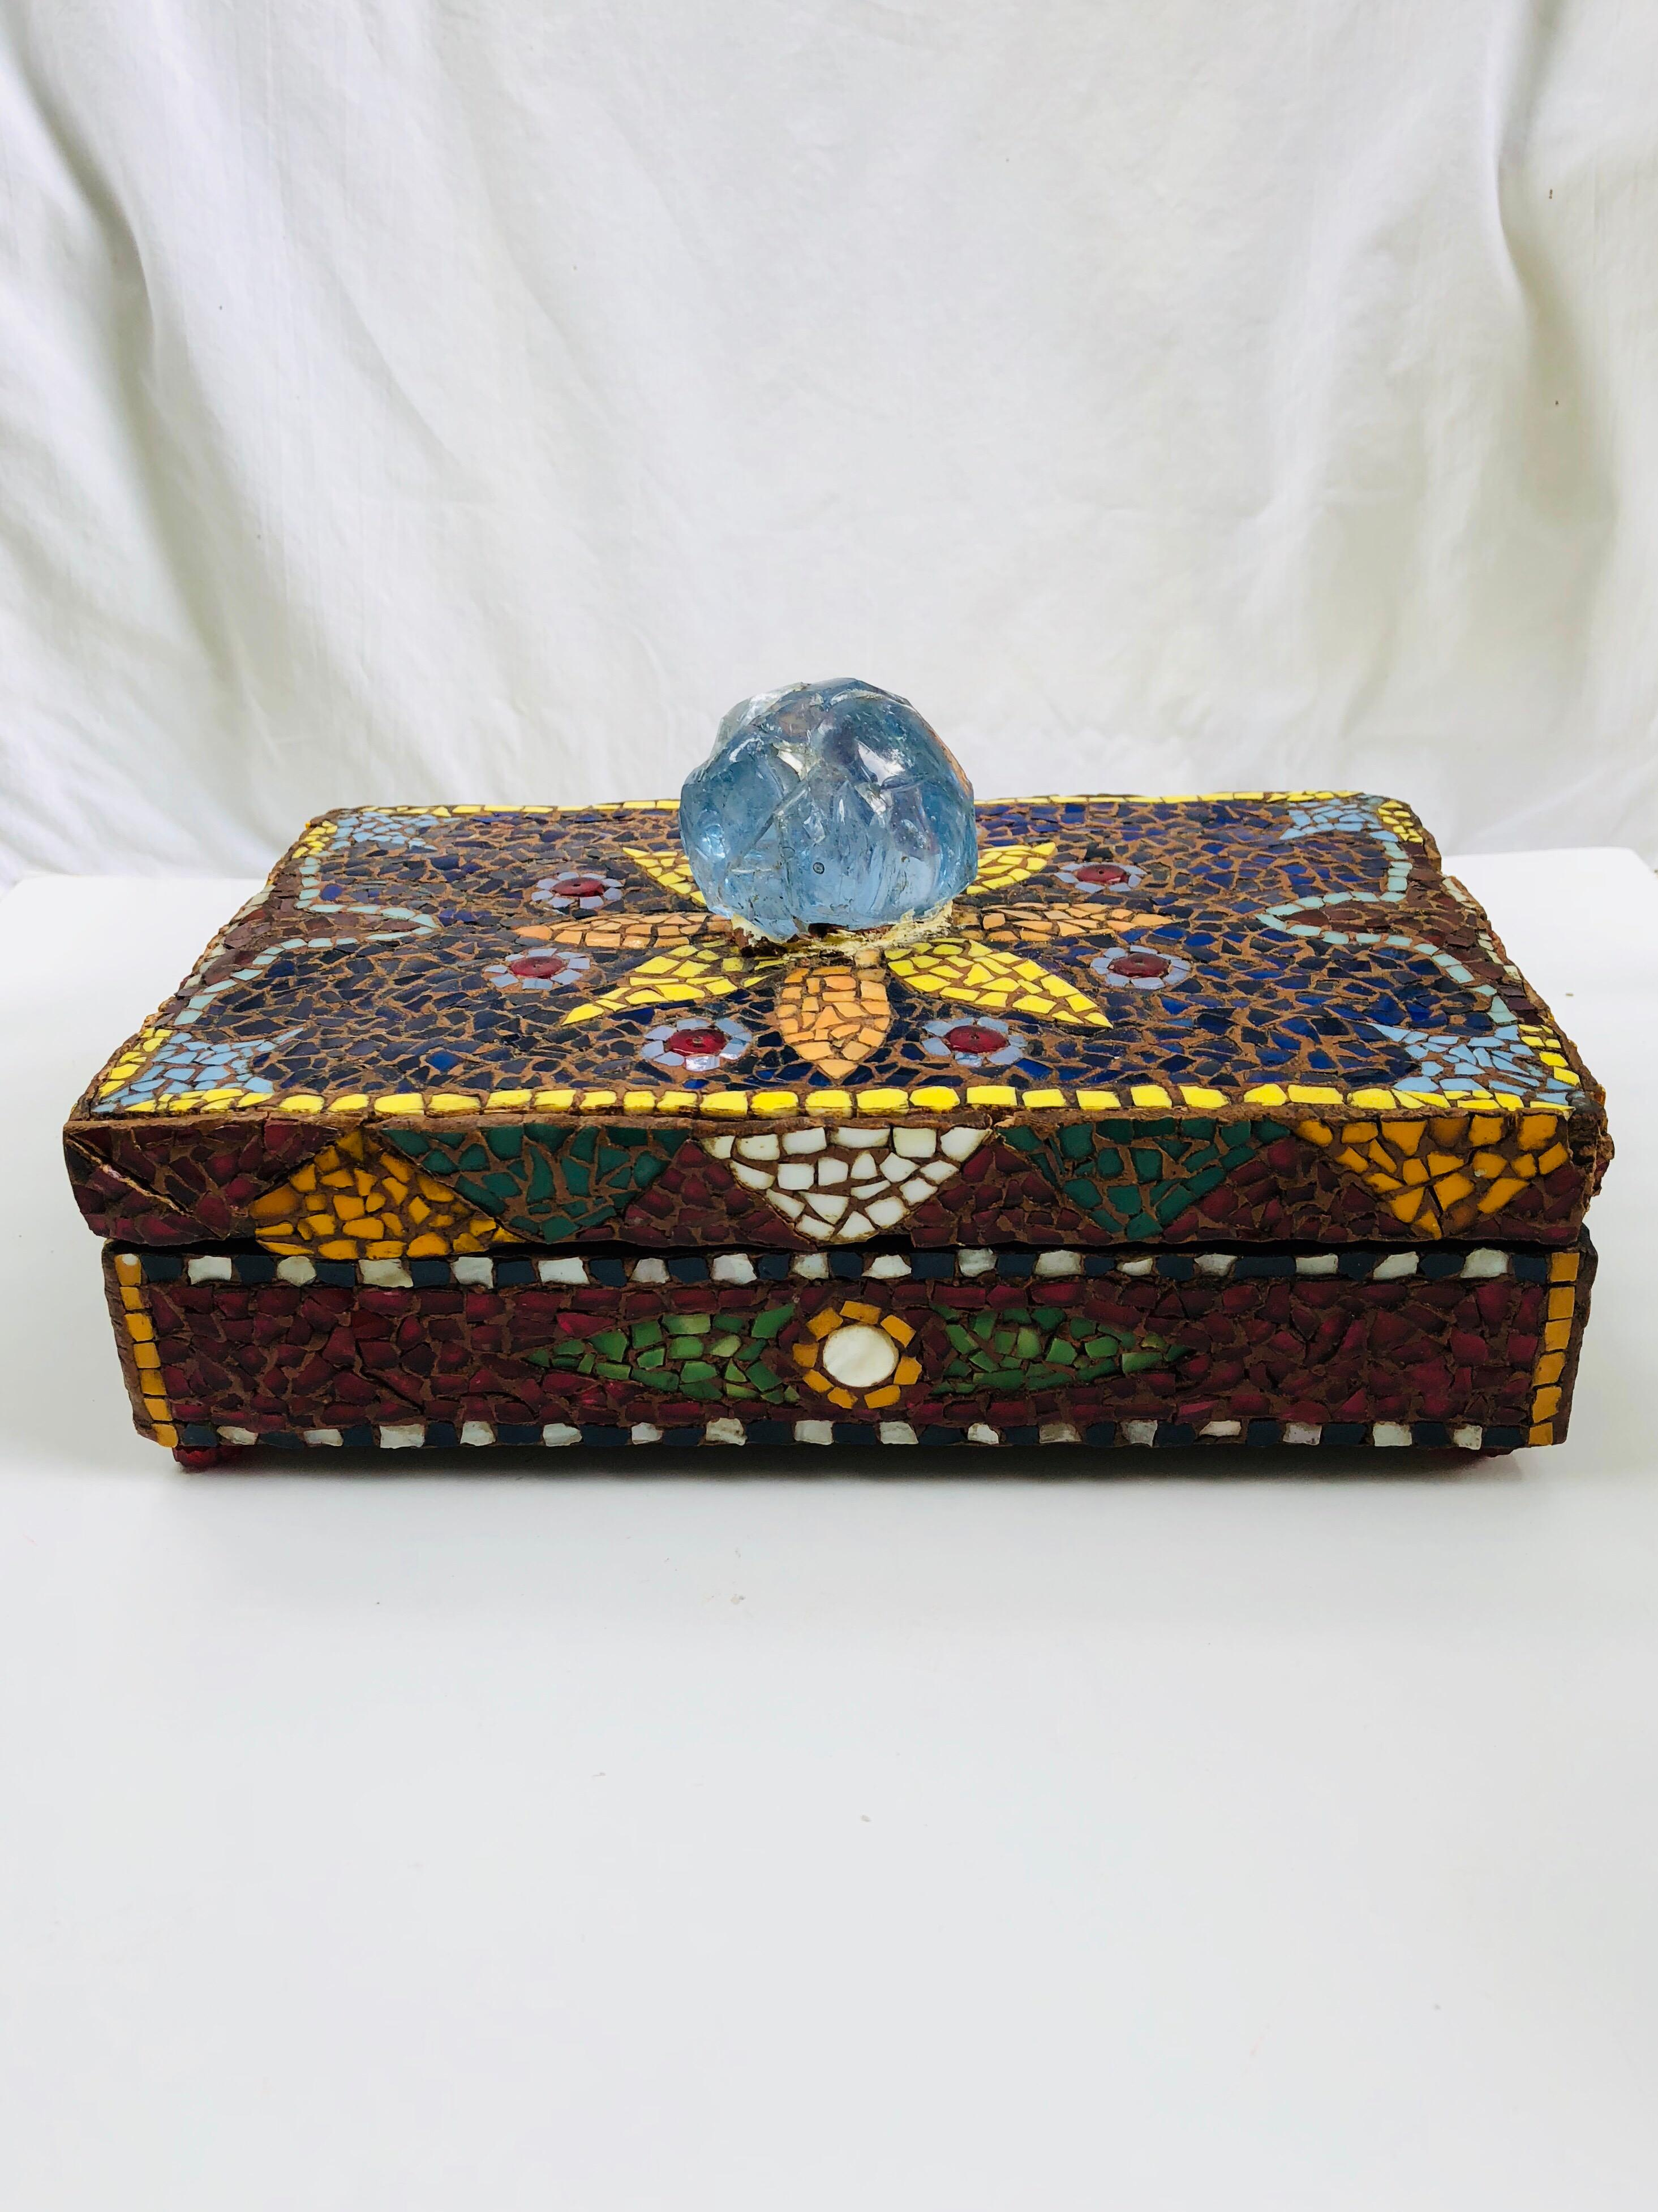 pique assiette french mosaic rectangular box with an enormous piece of blue translucent glass on the